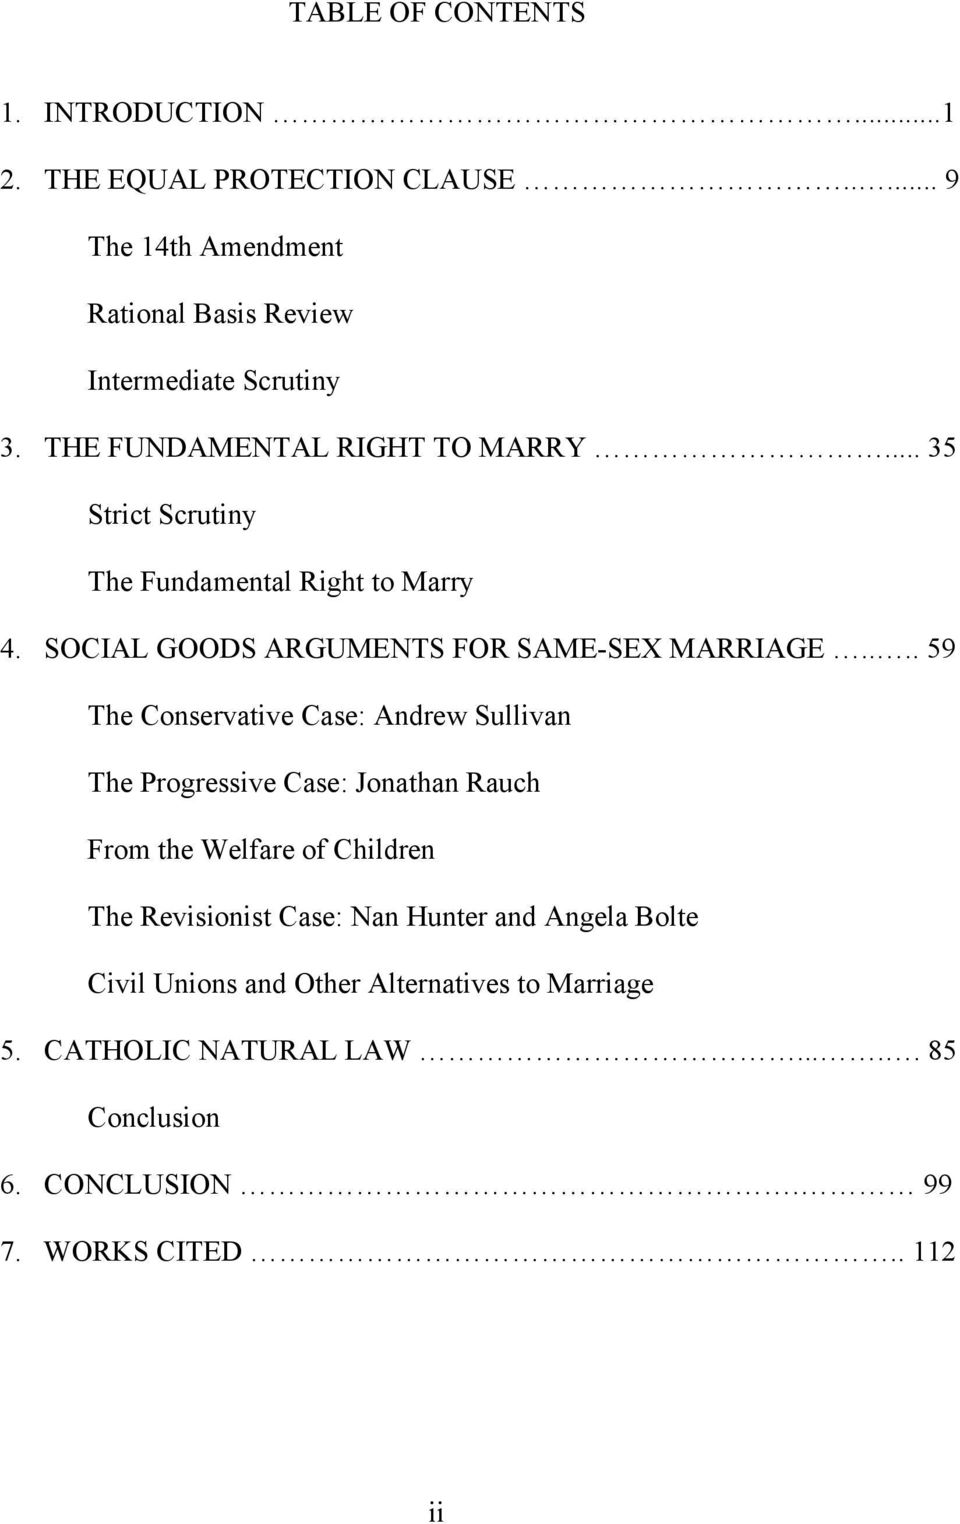 ... 59 The Conservative Case: Andrew Sullivan The Progressive Case: Jonathan Rauch From the Welfare of Children The Revisionist Case: Nan